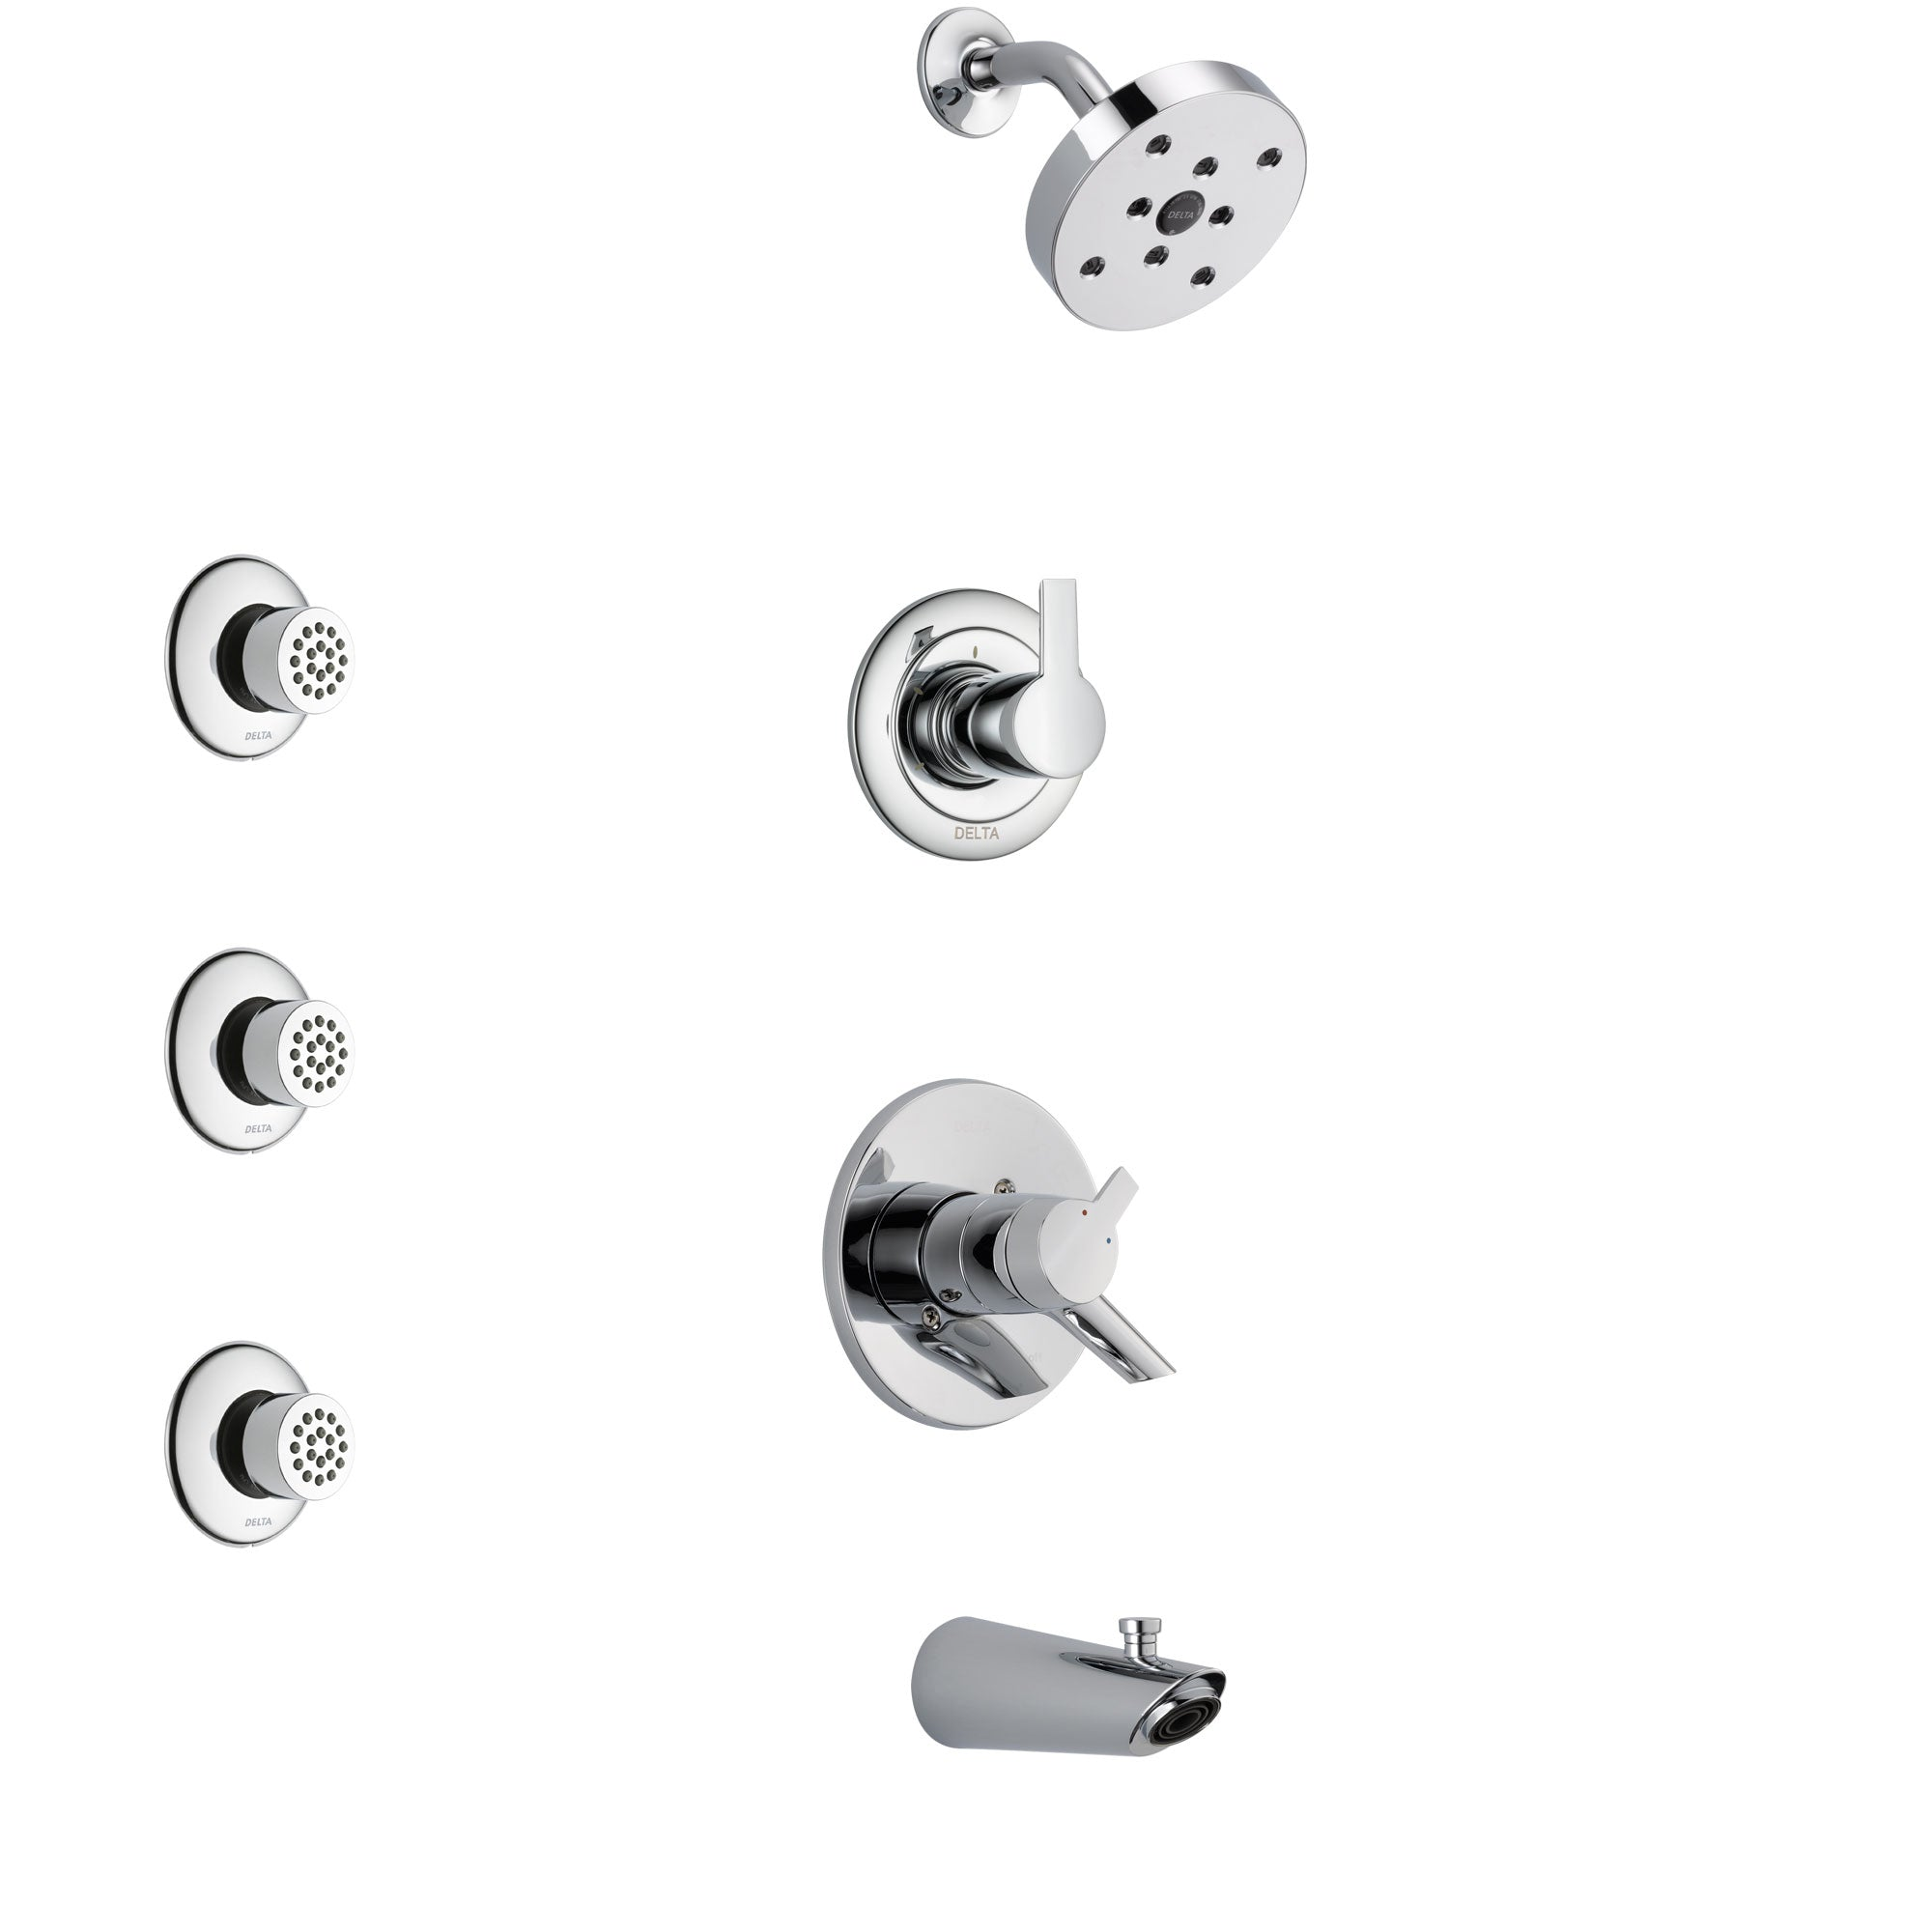 Delta Compel Chrome Finish Tub and Shower System with Dual Control Handle, 3-Setting Diverter, Showerhead, and 3 Body Sprays SS174611